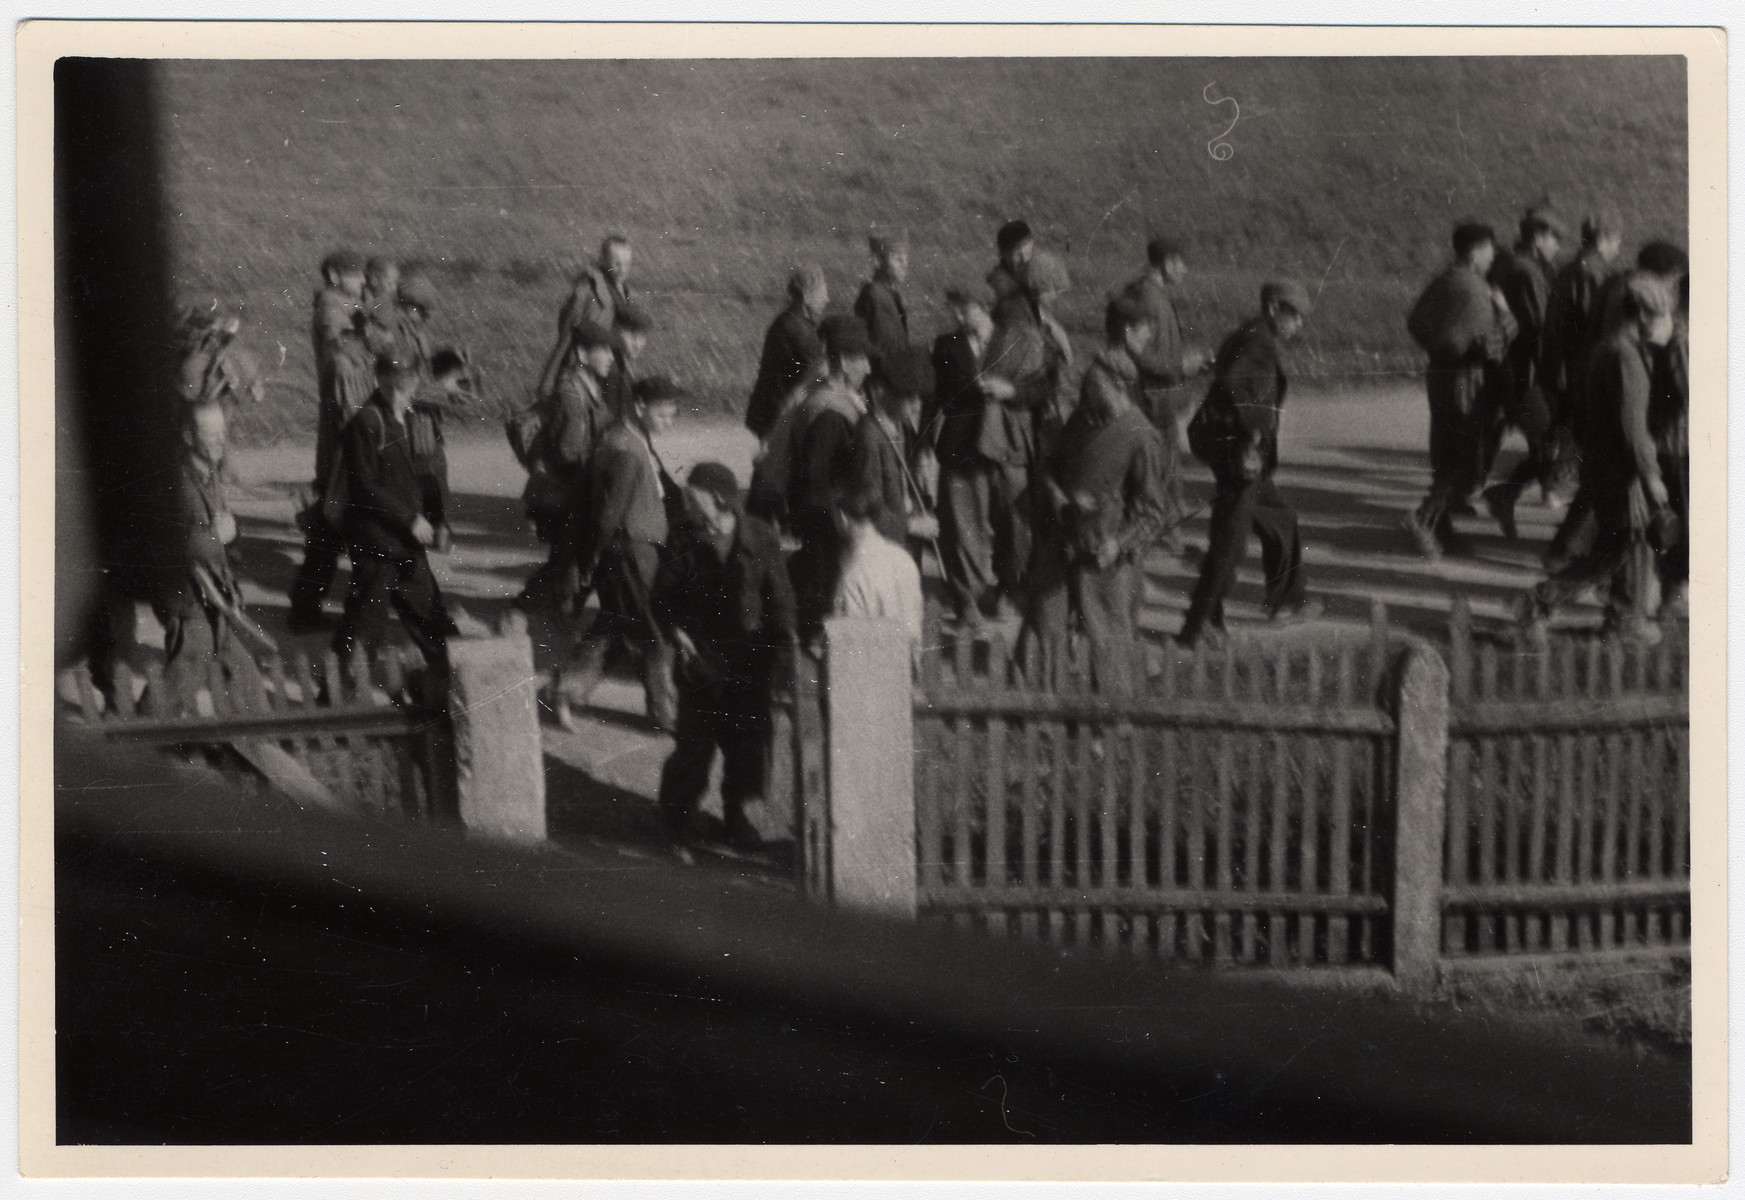 Clandestine photograph of prisoners marching to Dachau.  Maria Seidenberger took the photo from the second floor window of her family's home while her mother stood outside and gave potatoes to the prisoners.  A former Czech political prisoner, Karel Kasak is standing with his back to the camera, wearing a white shirt.  According to Kasak's diary the prisoners were coming from Nurnberg.